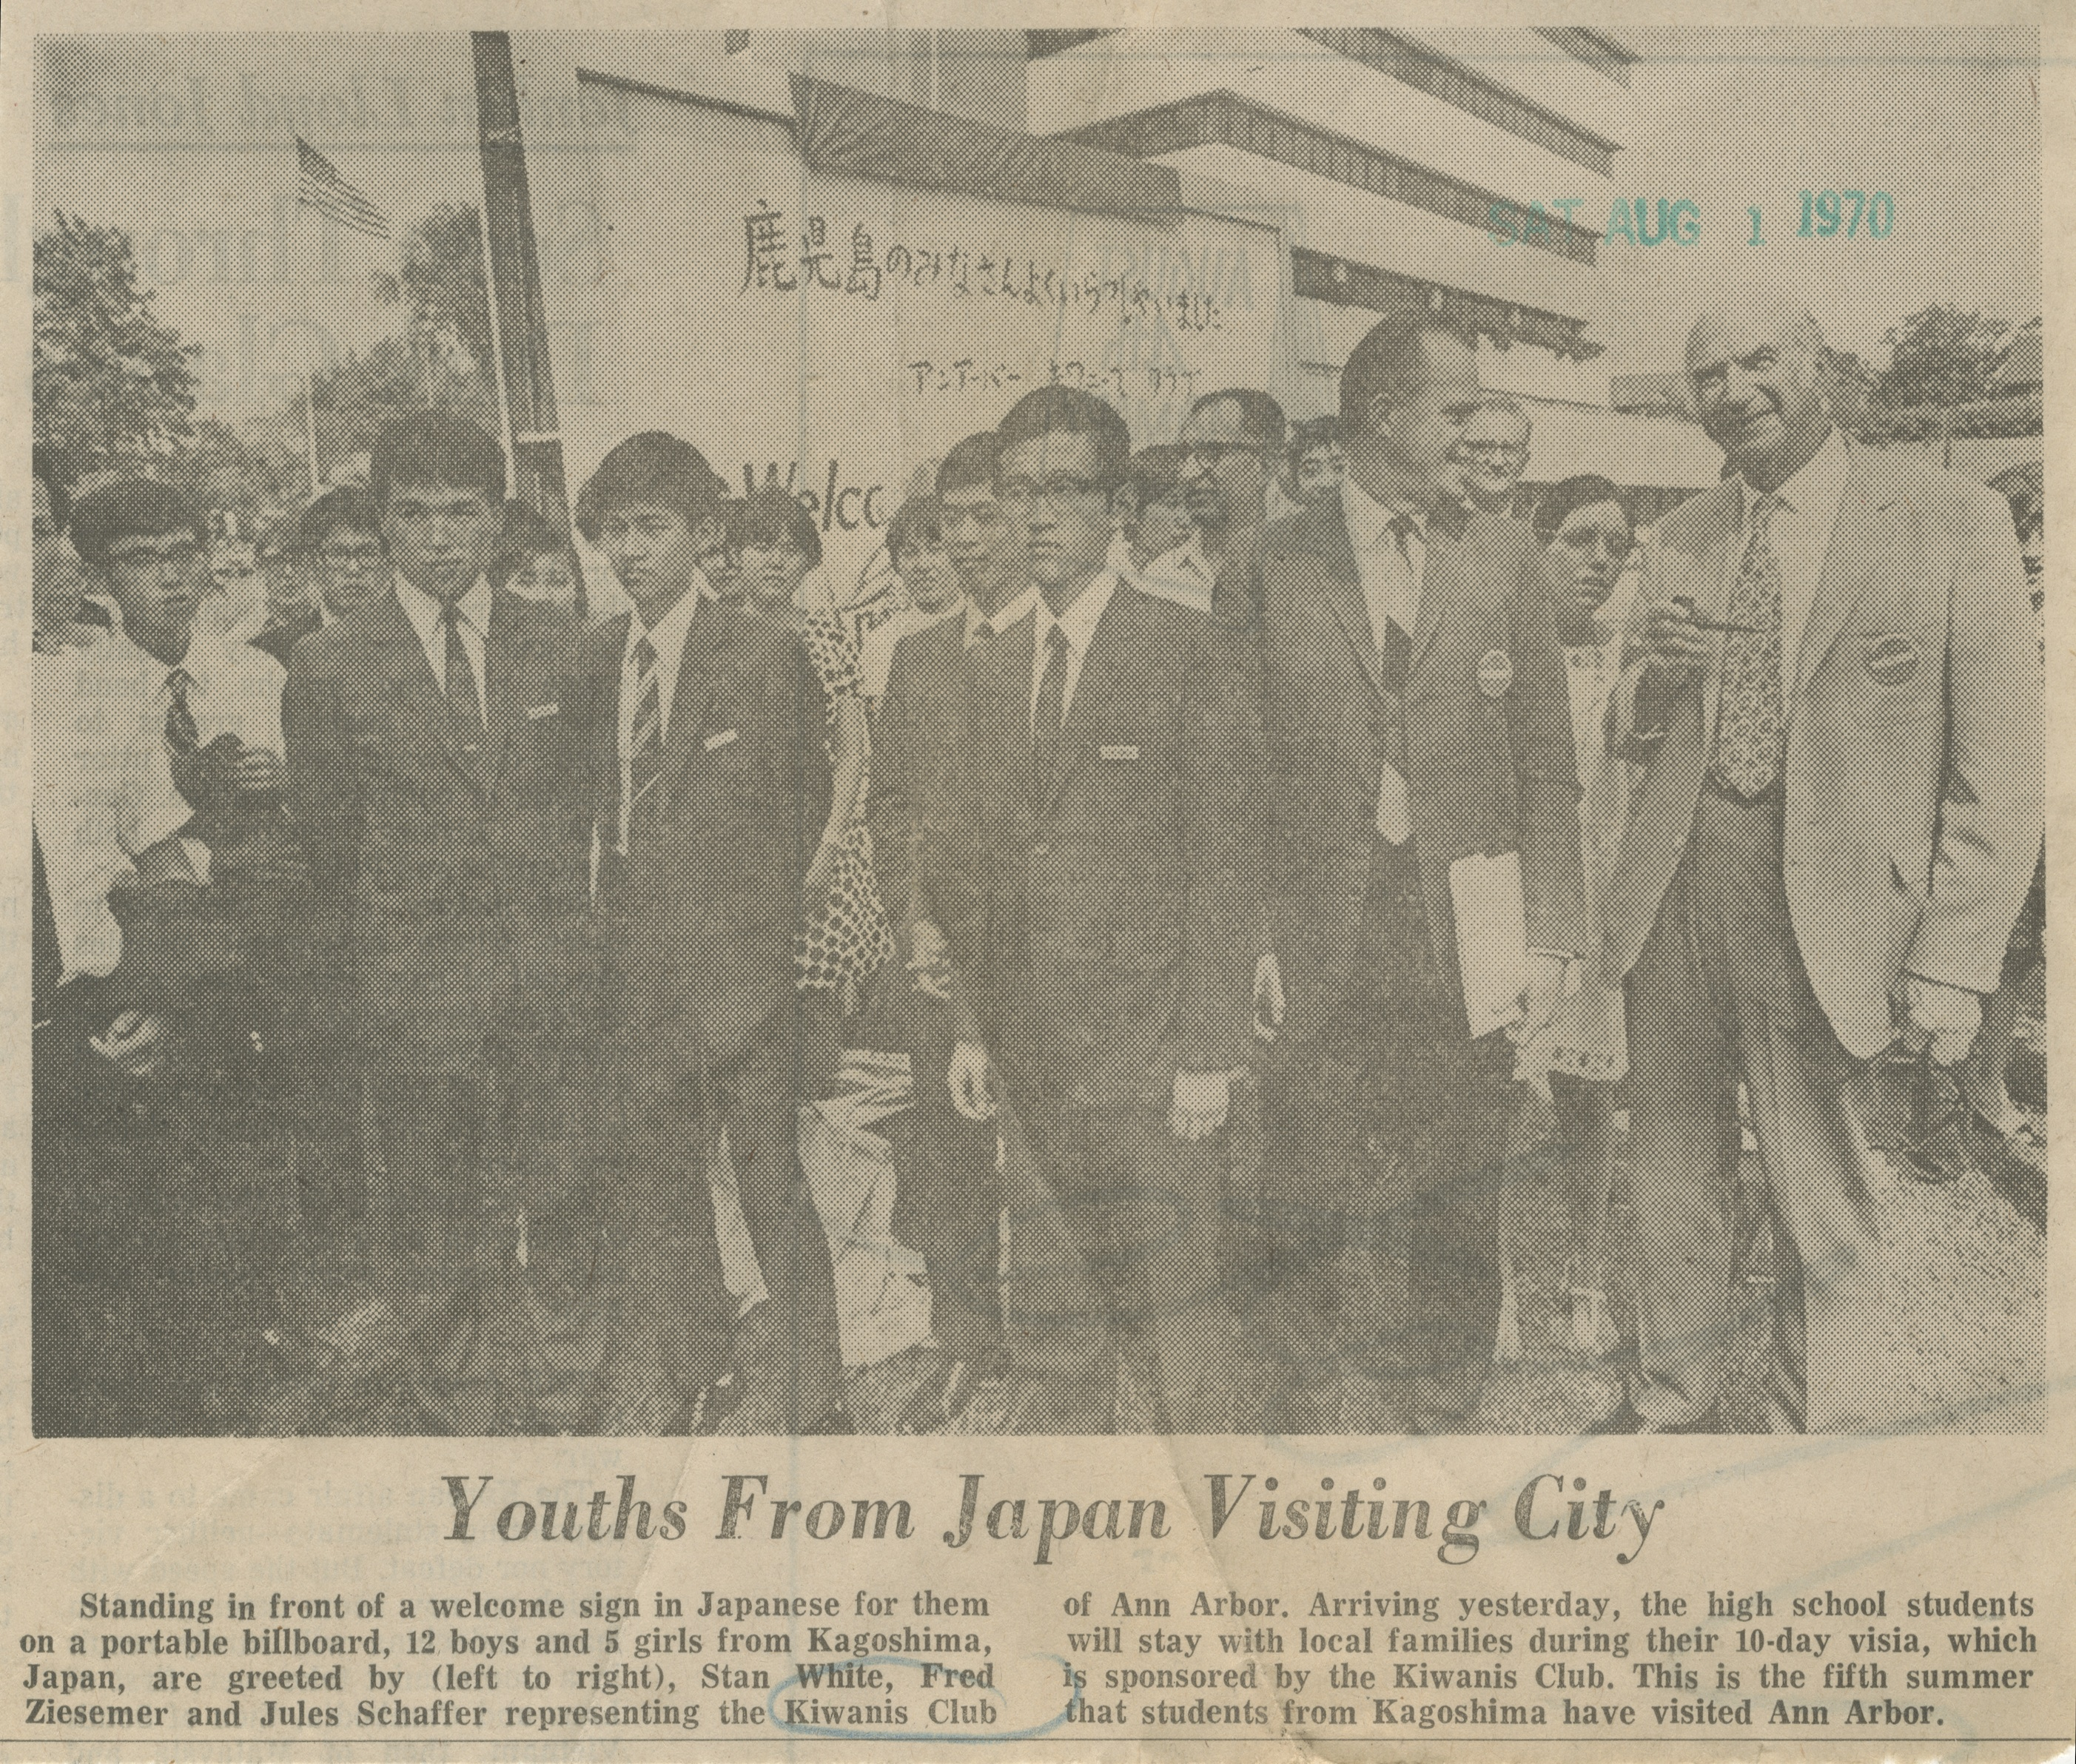 Youths From Japan Visiting City image